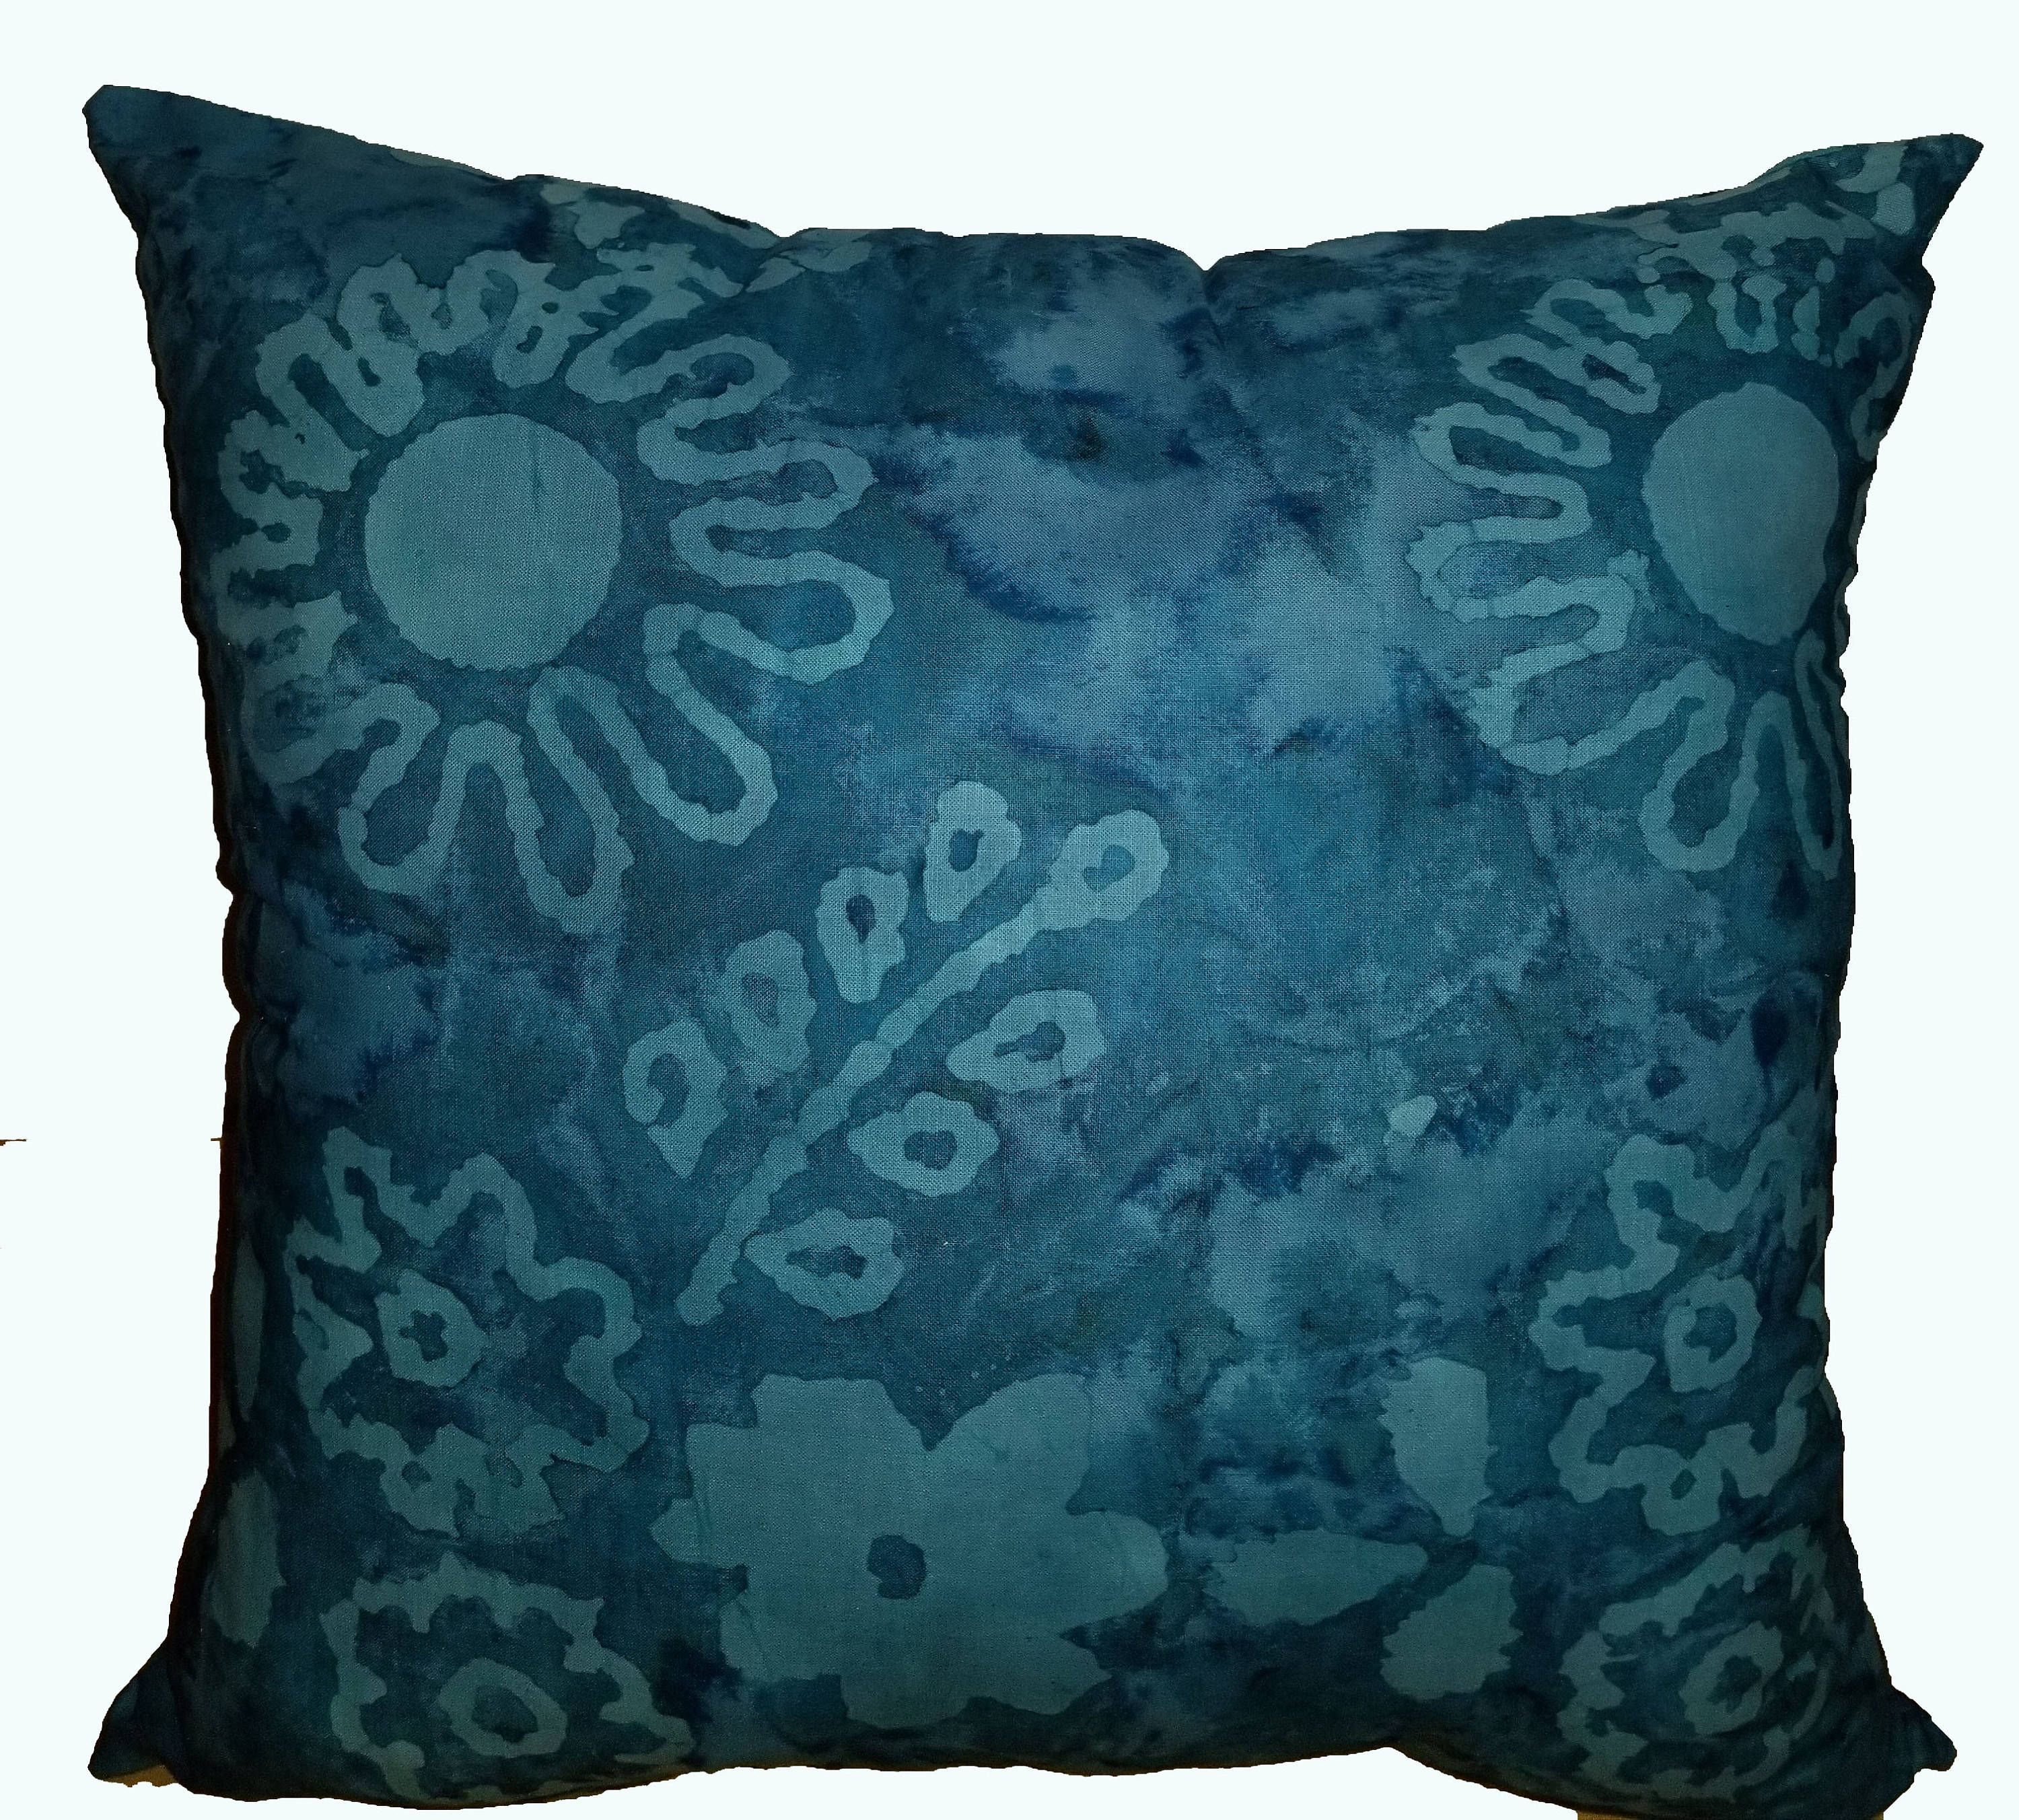 shopping pillows silver throw aarau walmart for ideas turquoise decor best decorating pillow tips decorative inexpensive overstock